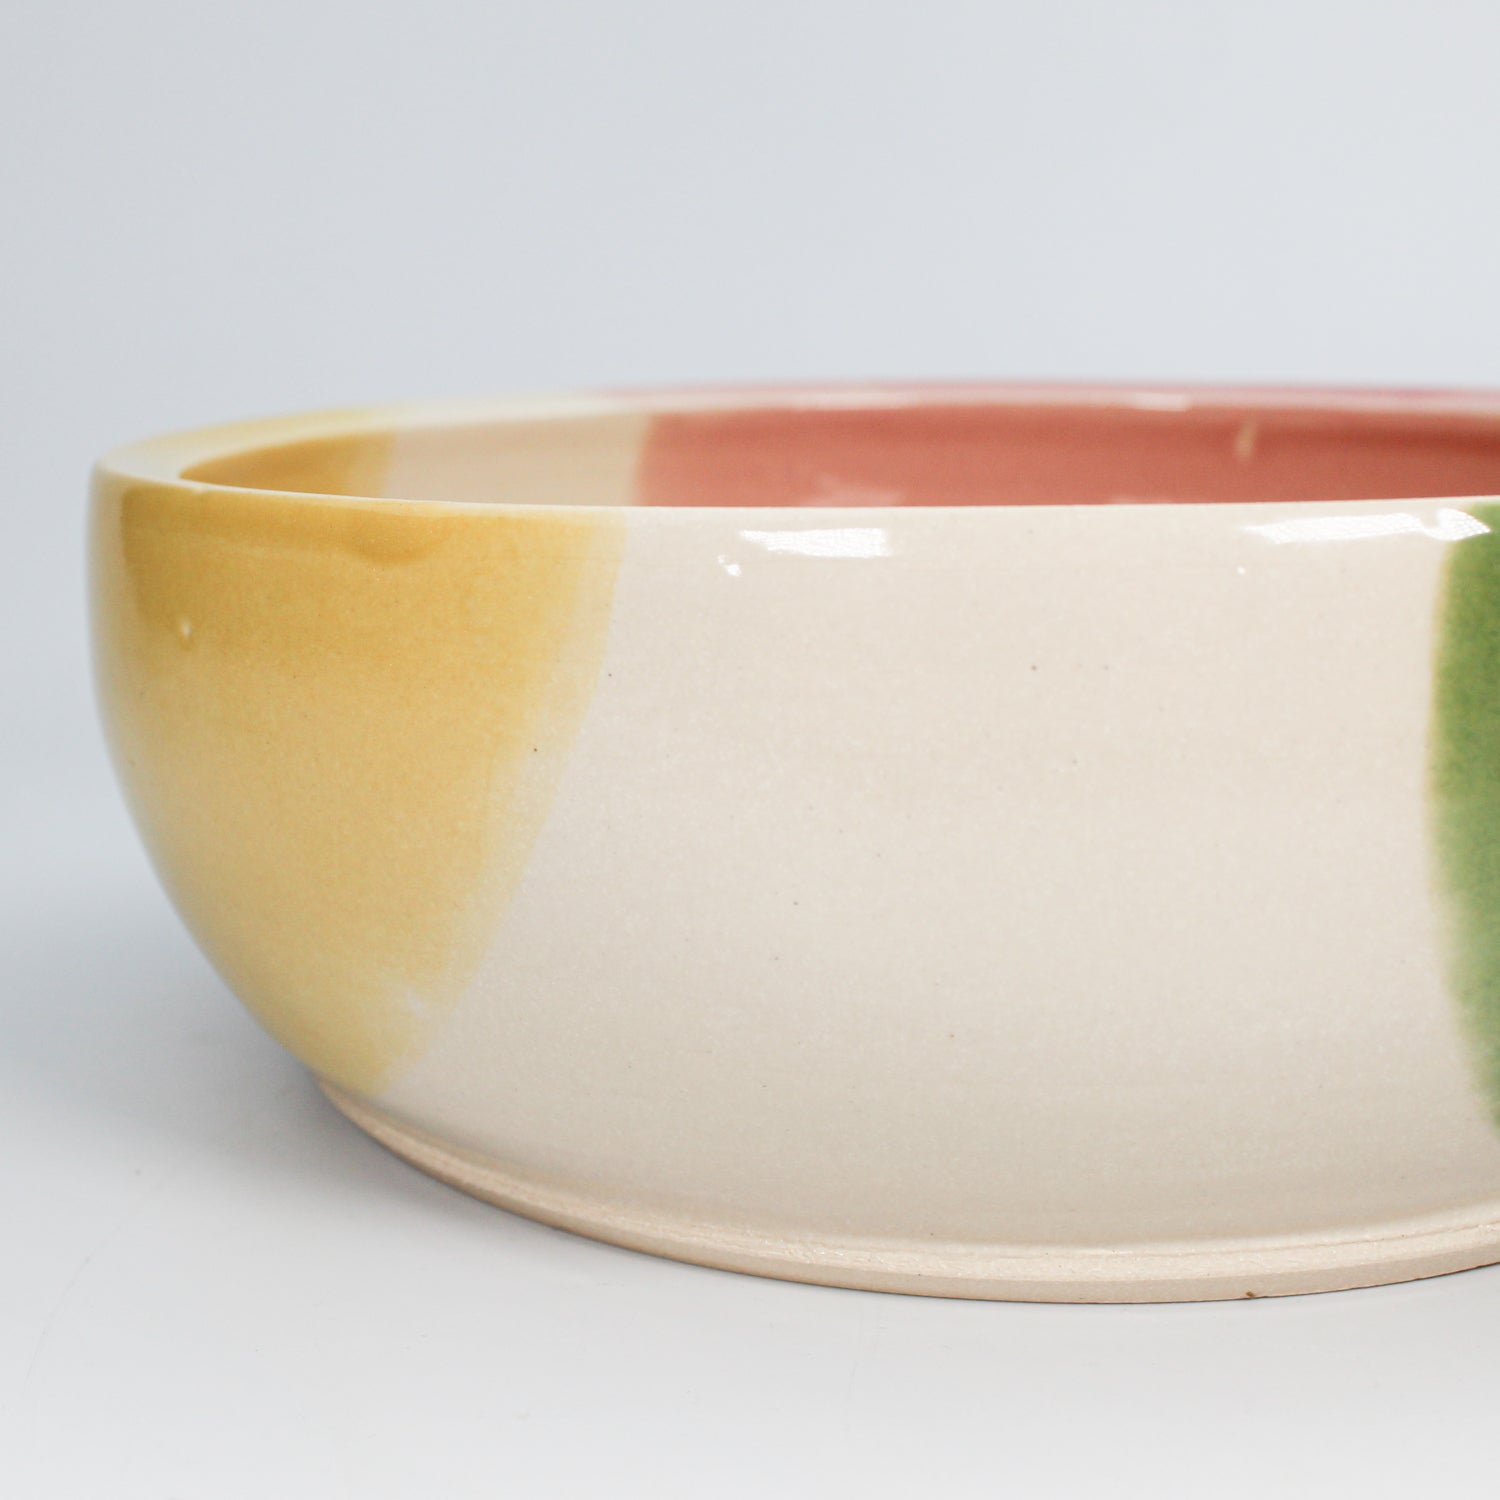 Close up of high gloss glaze detail on yellow, white, pink and green ceramic dog bowl